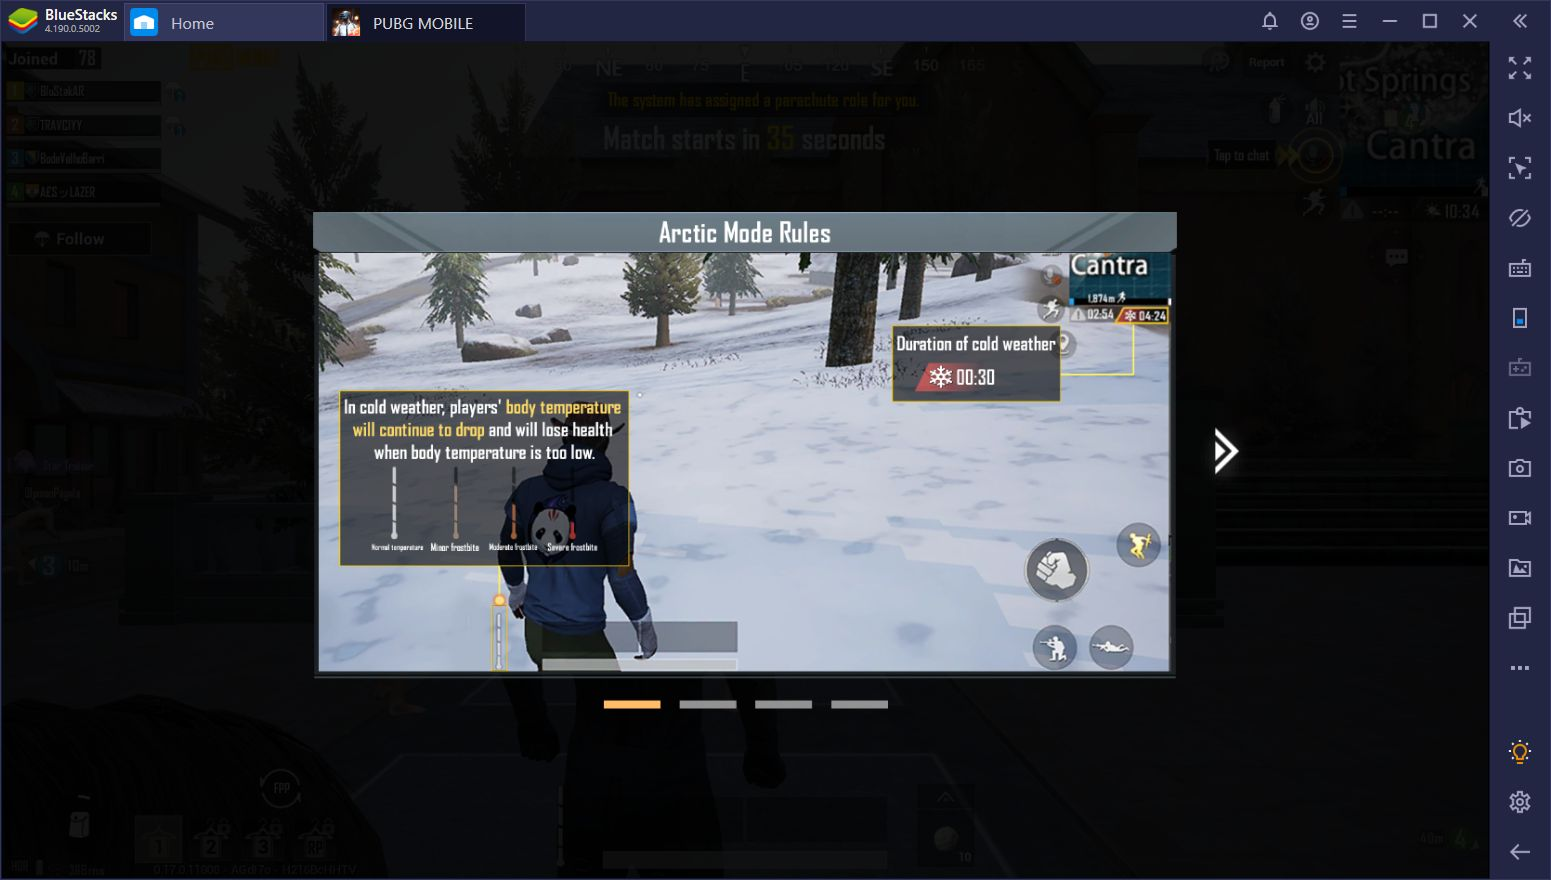 PUBG Mobile - Everything You Need to Know About the New Arctic Mode